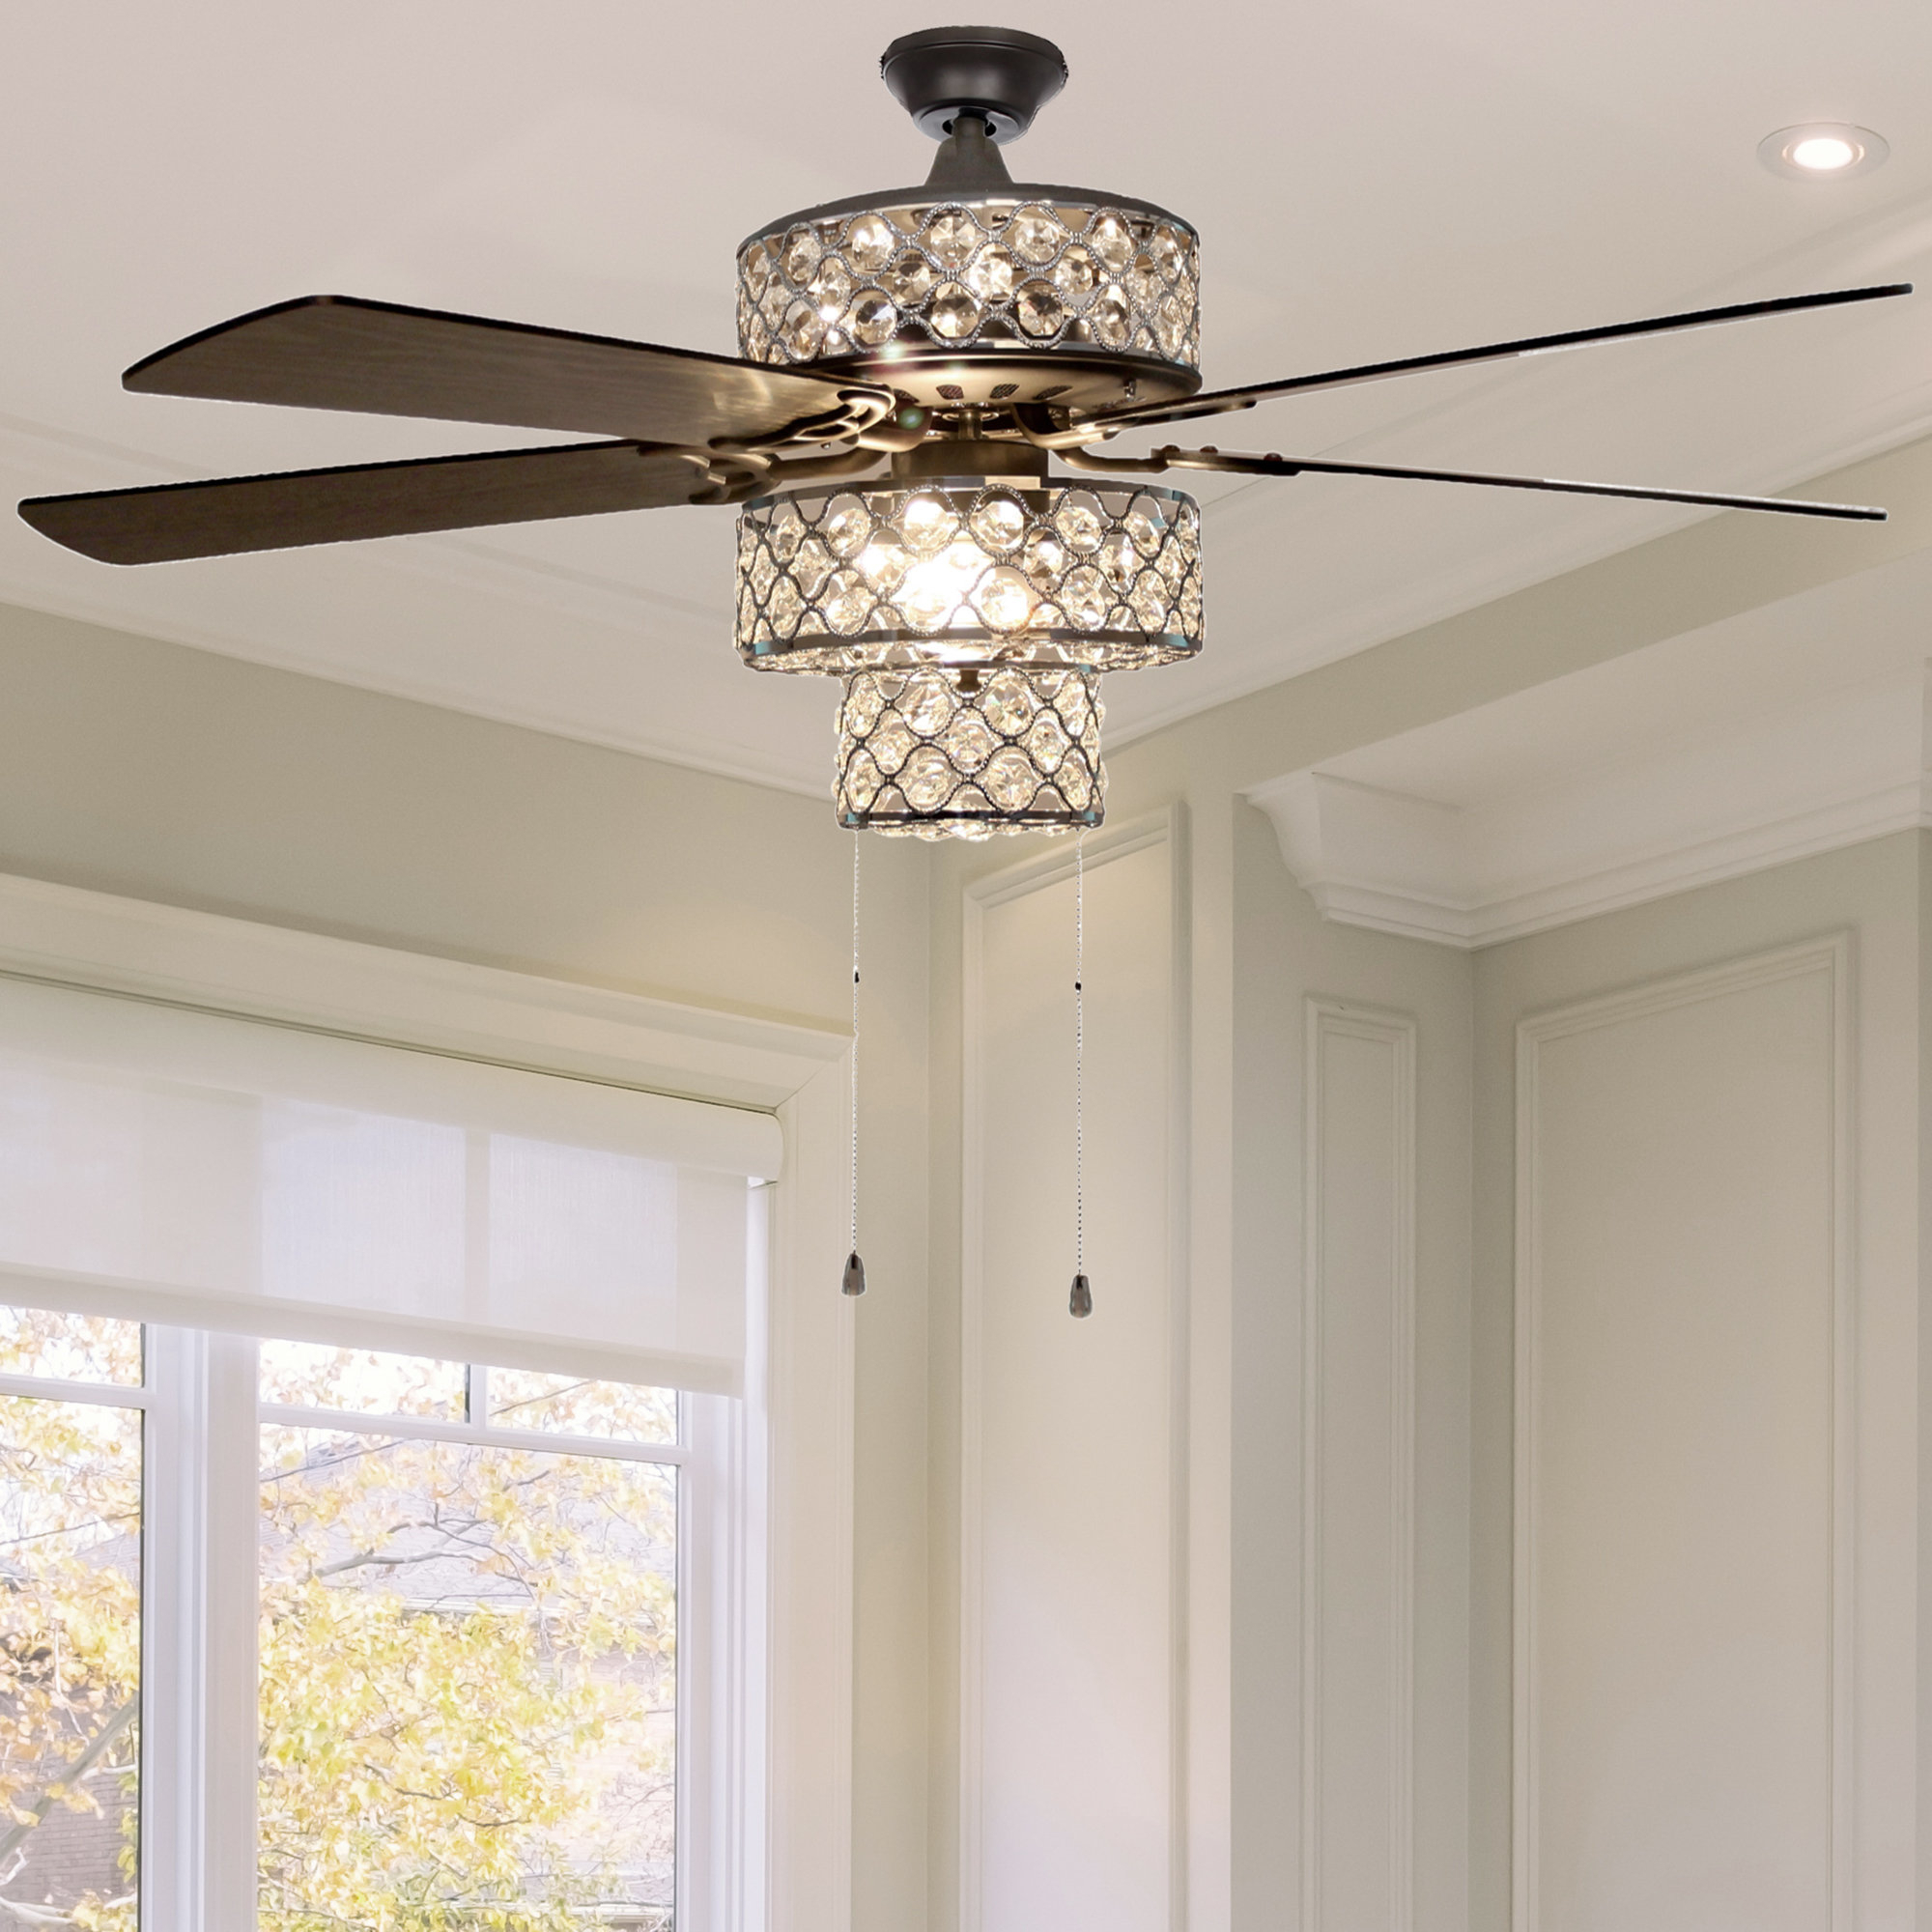 """Njie Caged Crystal 5 Blade Ceiling Fans For Recent 52"""" Marleigh Tri Tiered 5 Blade Ceiling Fan With Remote, Light Kit Included (View 15 of 20)"""